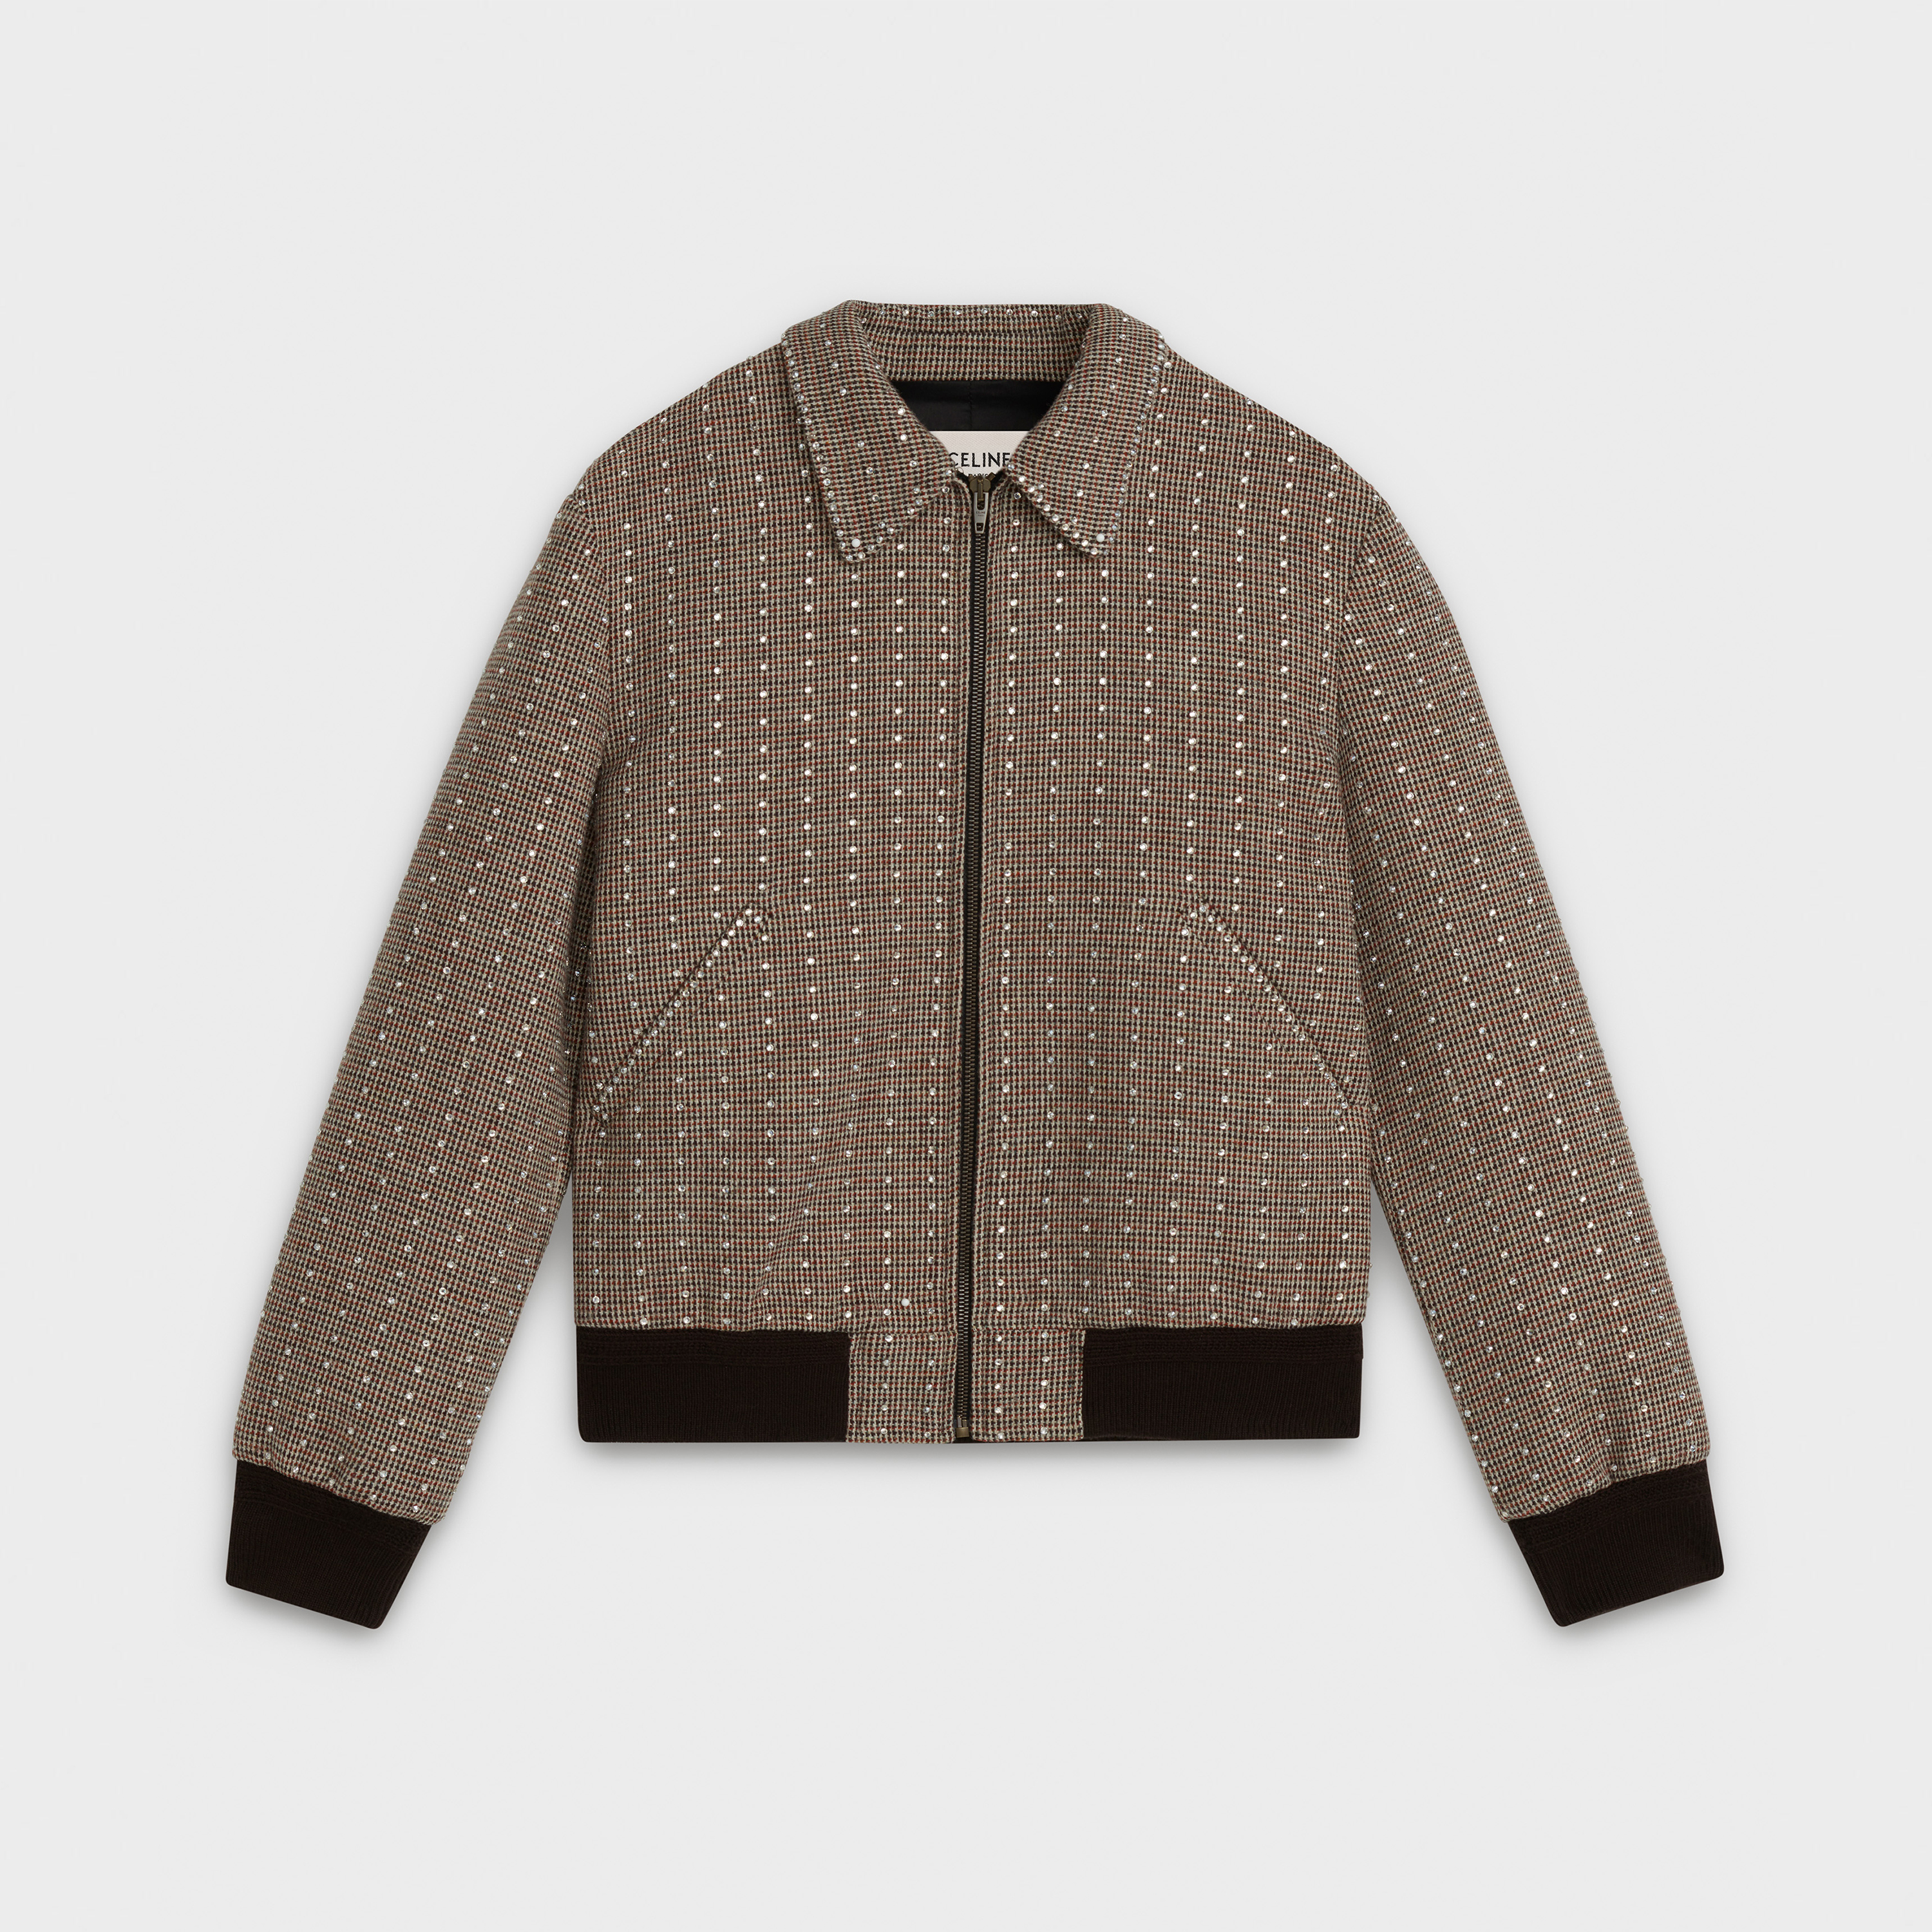 teddy jacket in microtweed with rhinestones | CELINE